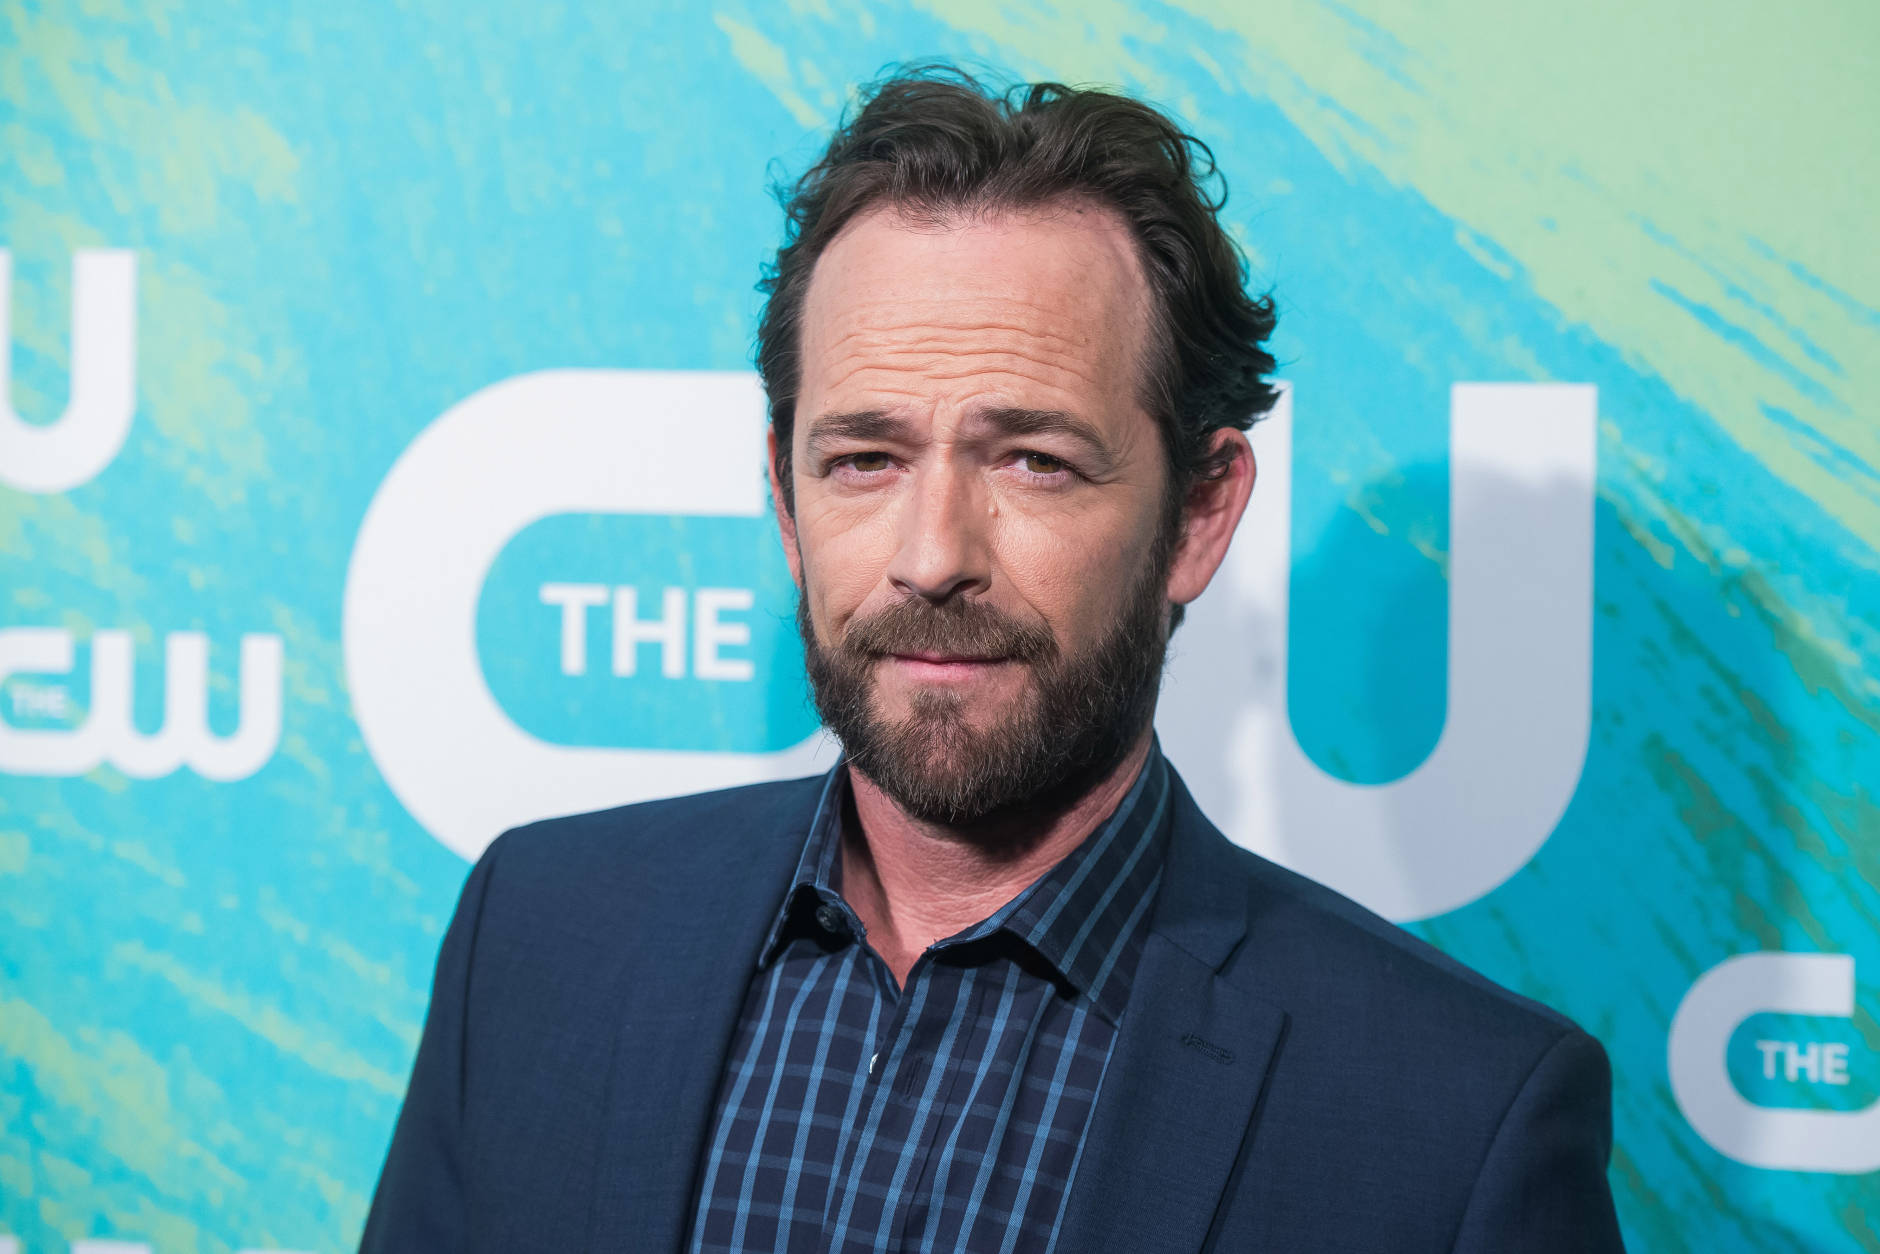 Luke Perry attends the The CW Network's 2016 Upfront Presentation on Thursday, May 19, 2016, in New York. (Photo by Charles Sykes/Invision/AP)